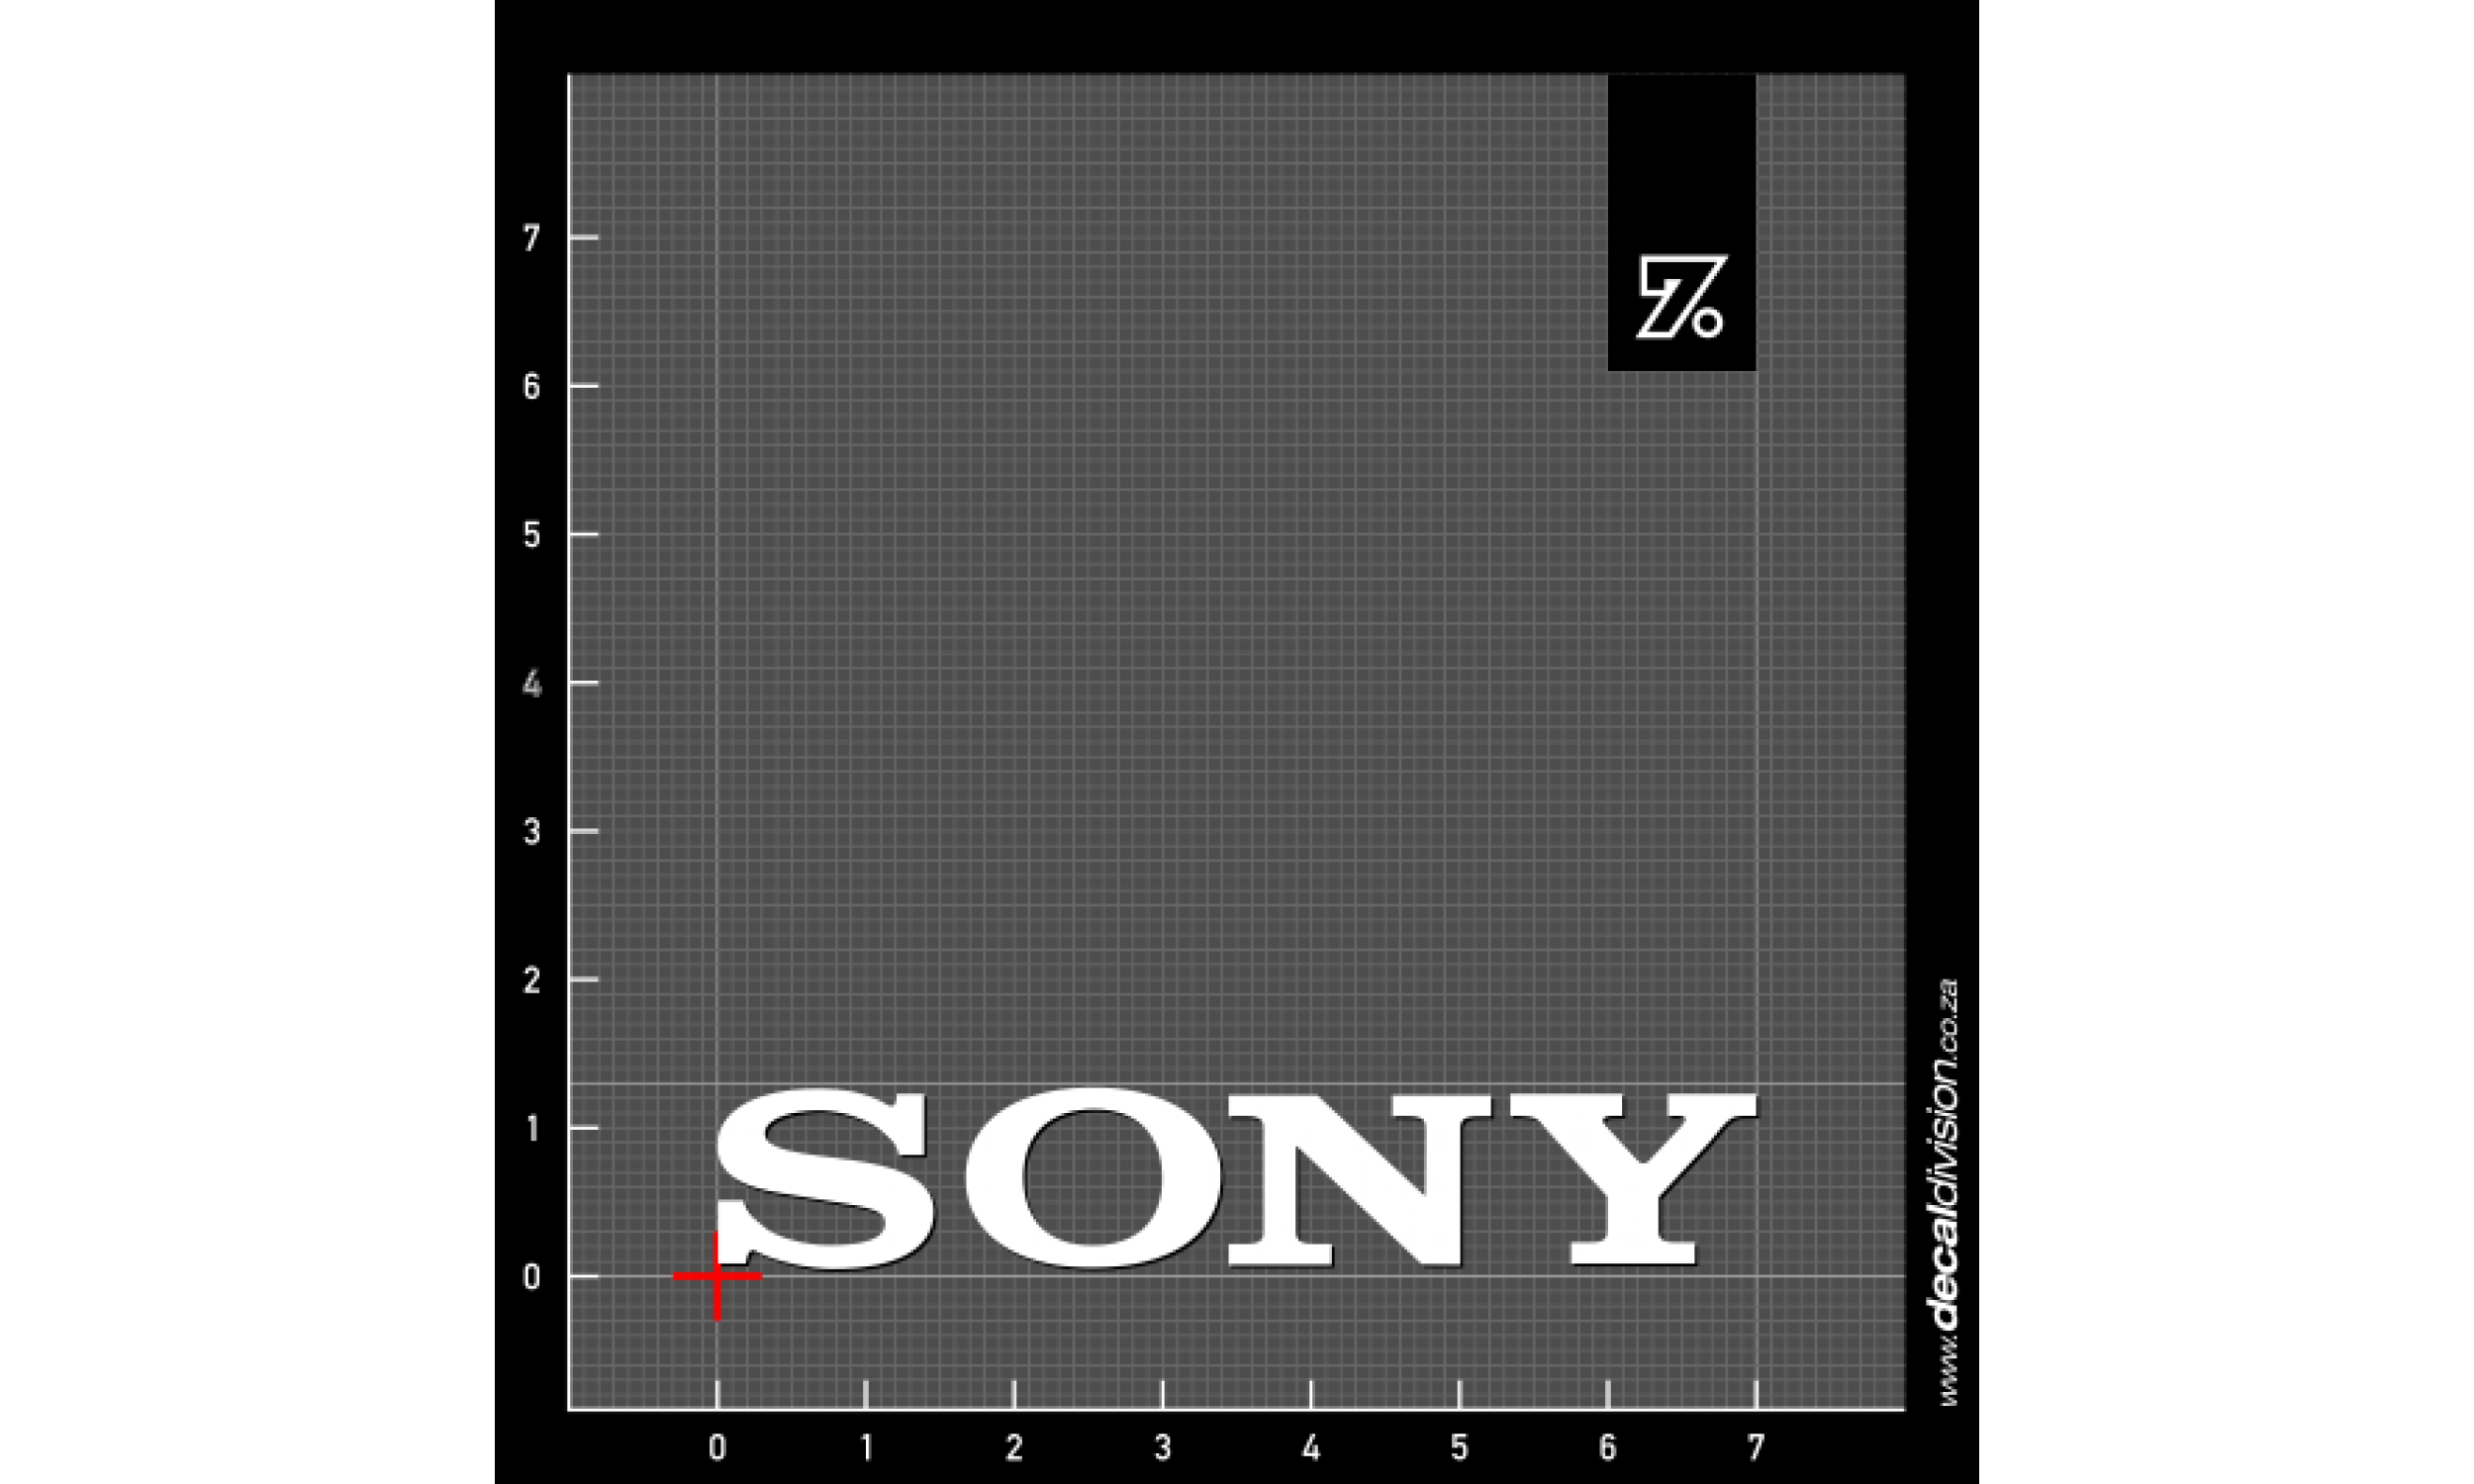 Sony logo sticker